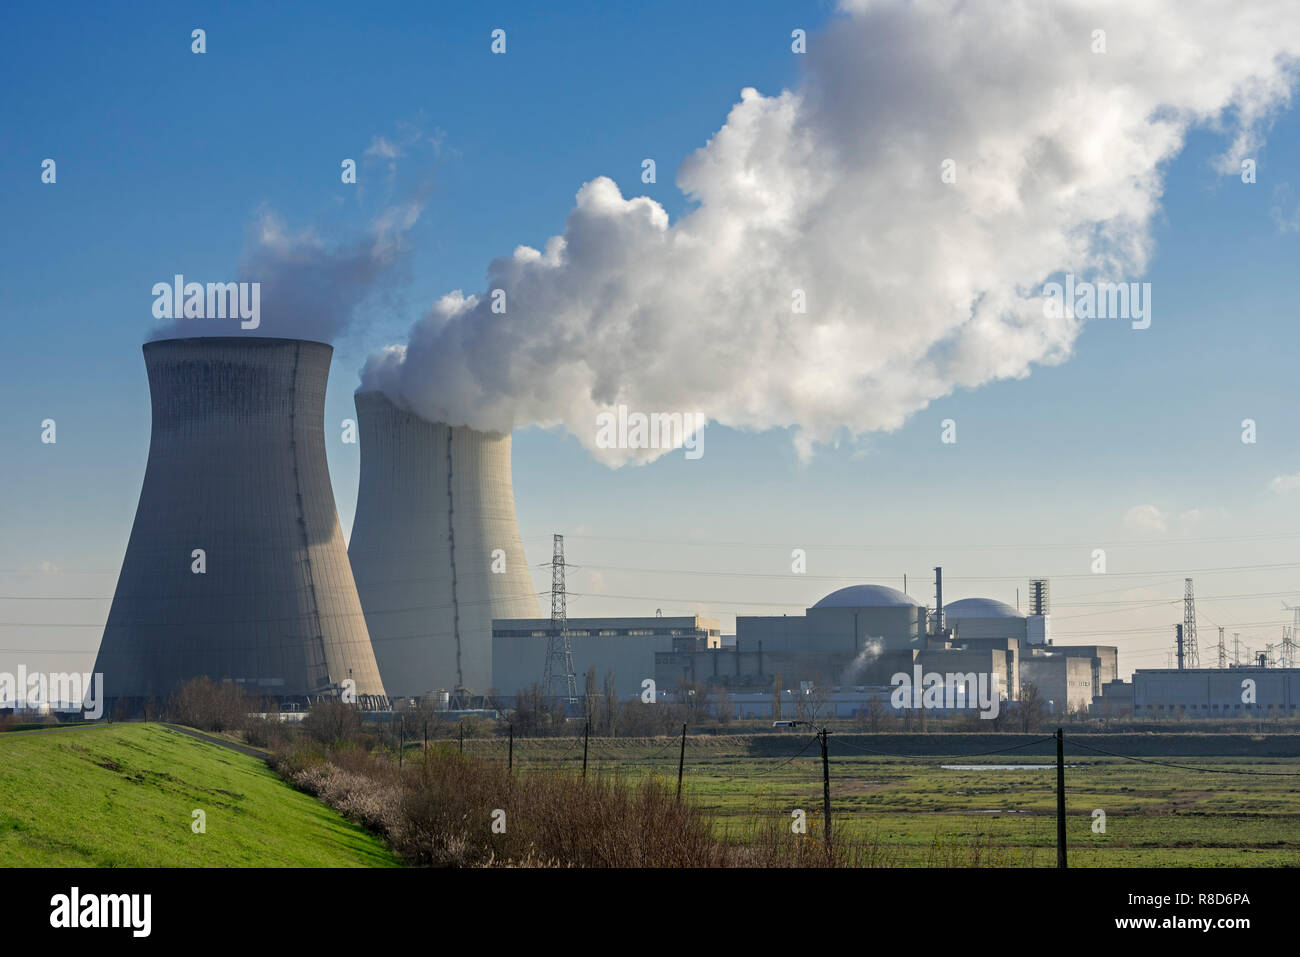 Cooling towers of the Doel Nuclear Power Station / nuclear power plant in the Antwerp harbour, Flanders, Belgium - Stock Image